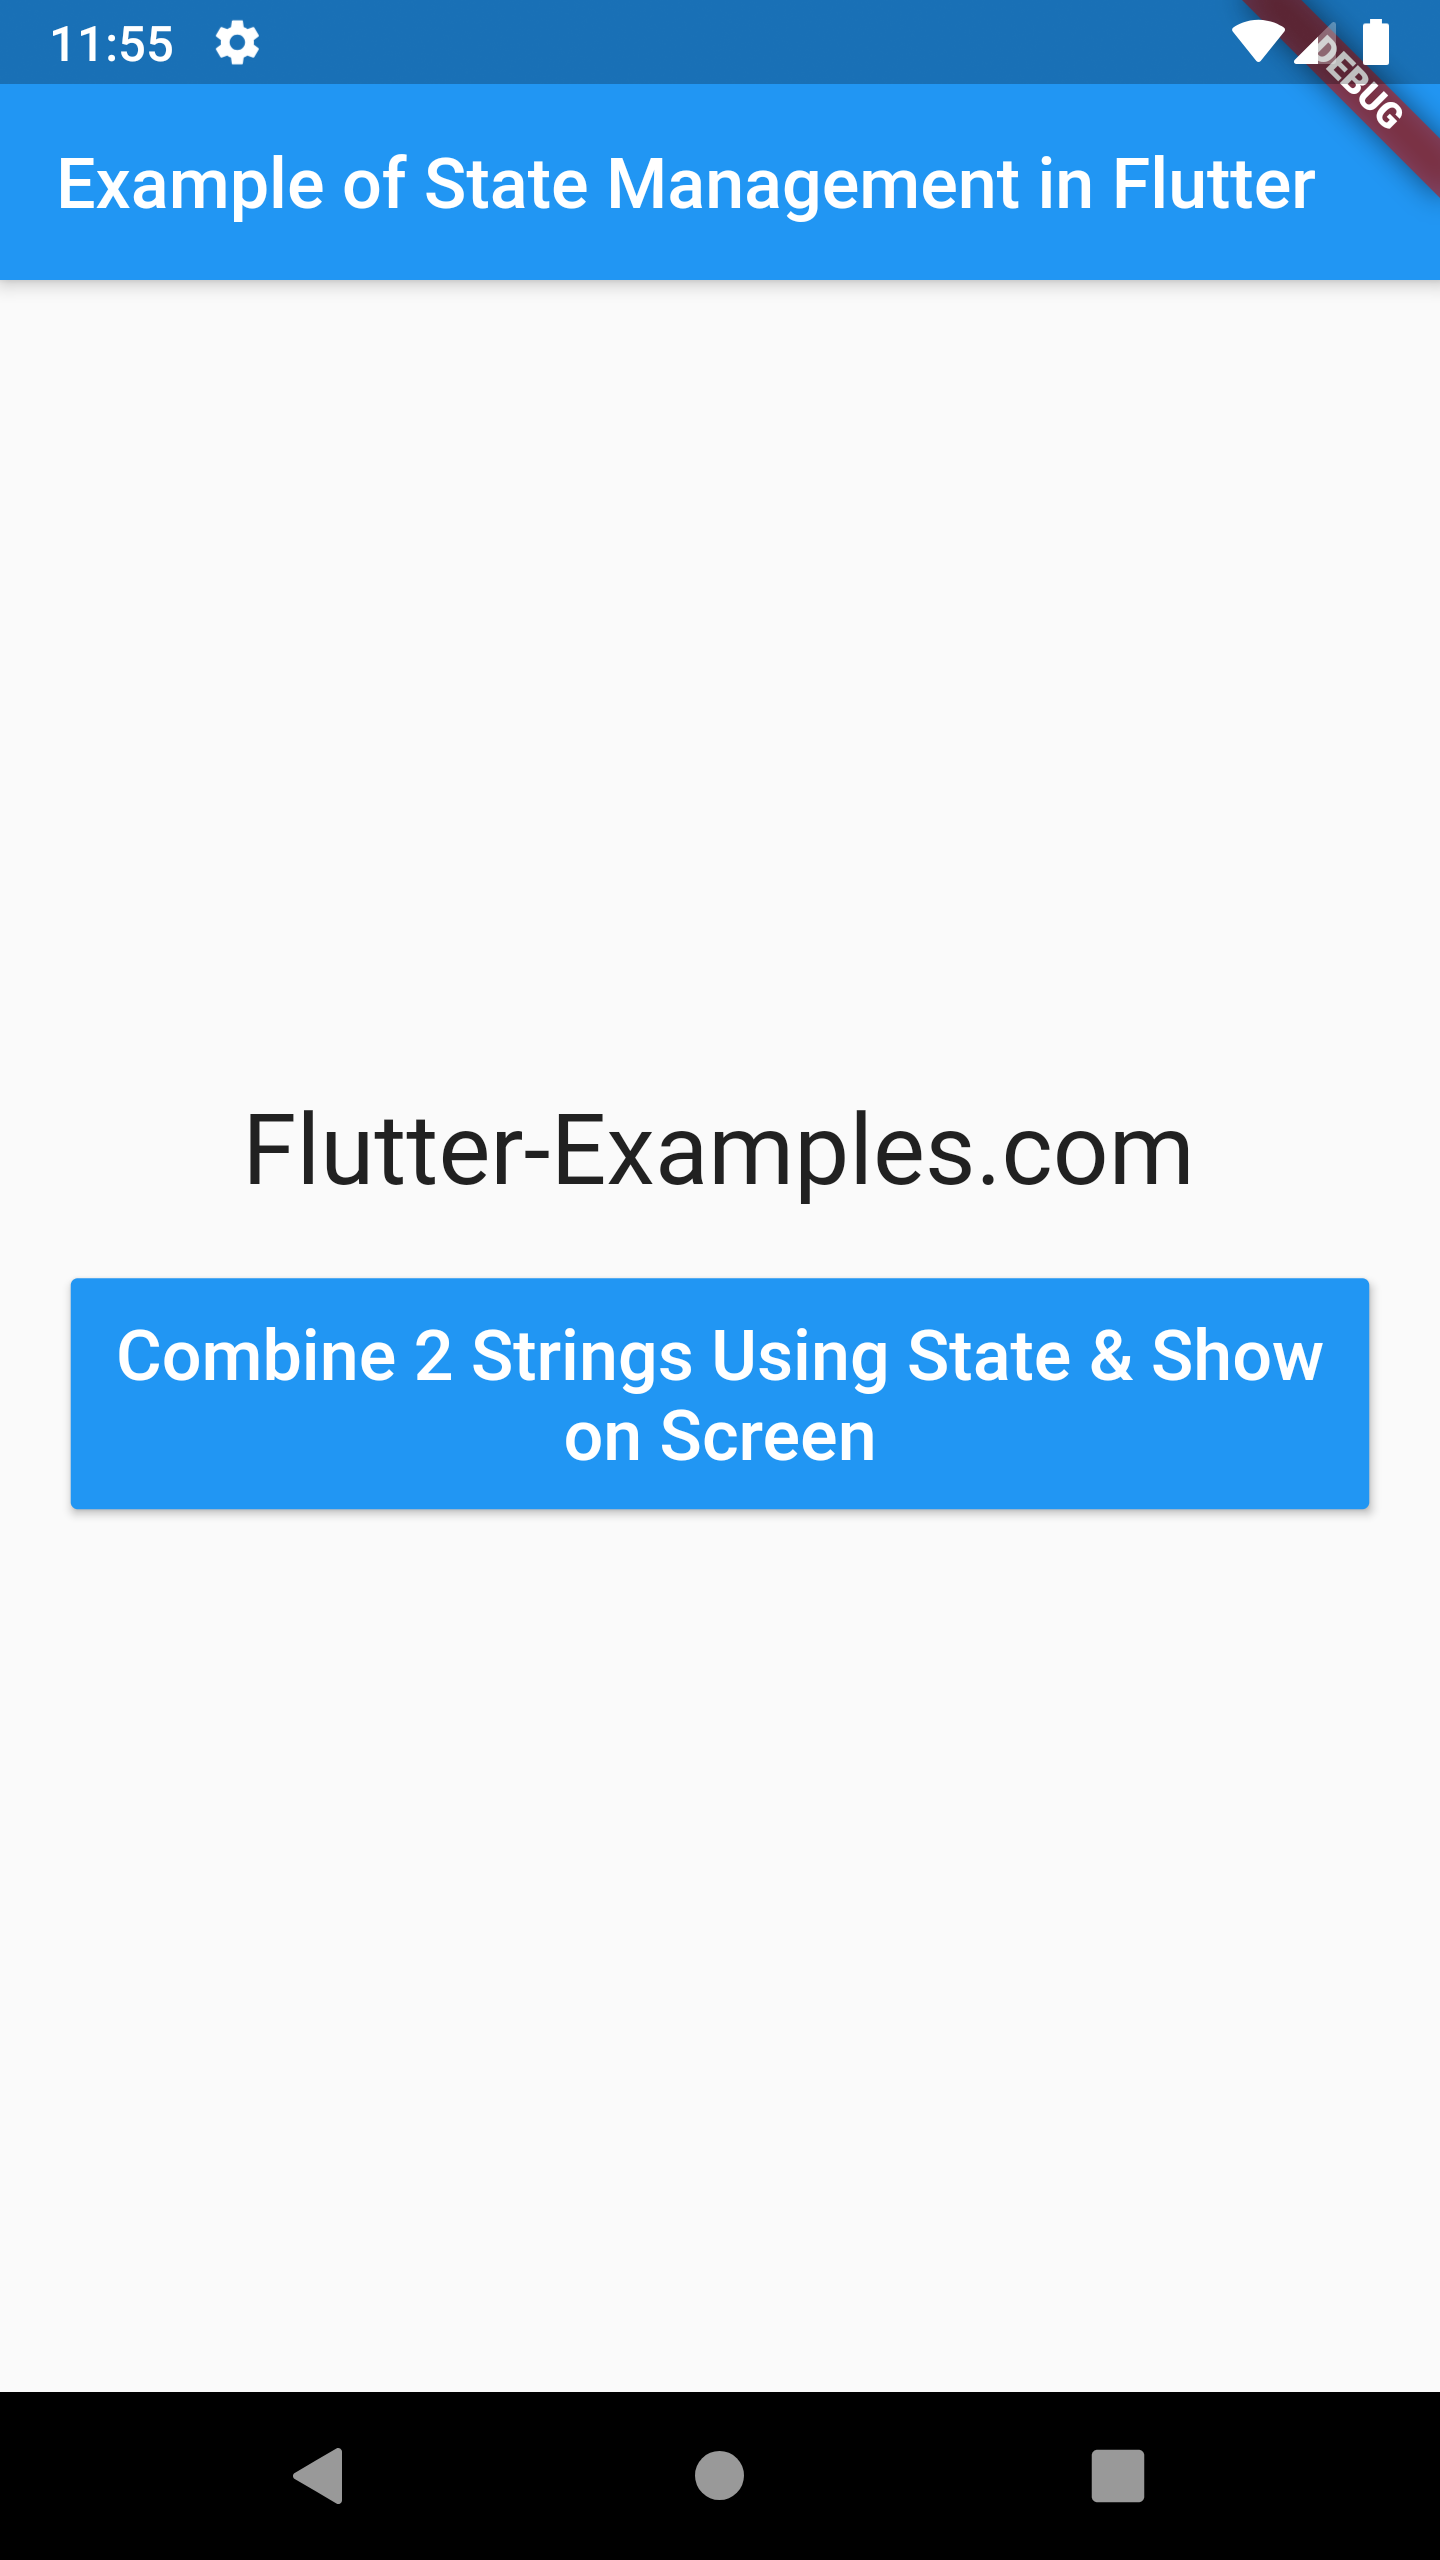 Example of How to Use State Management in Flutter